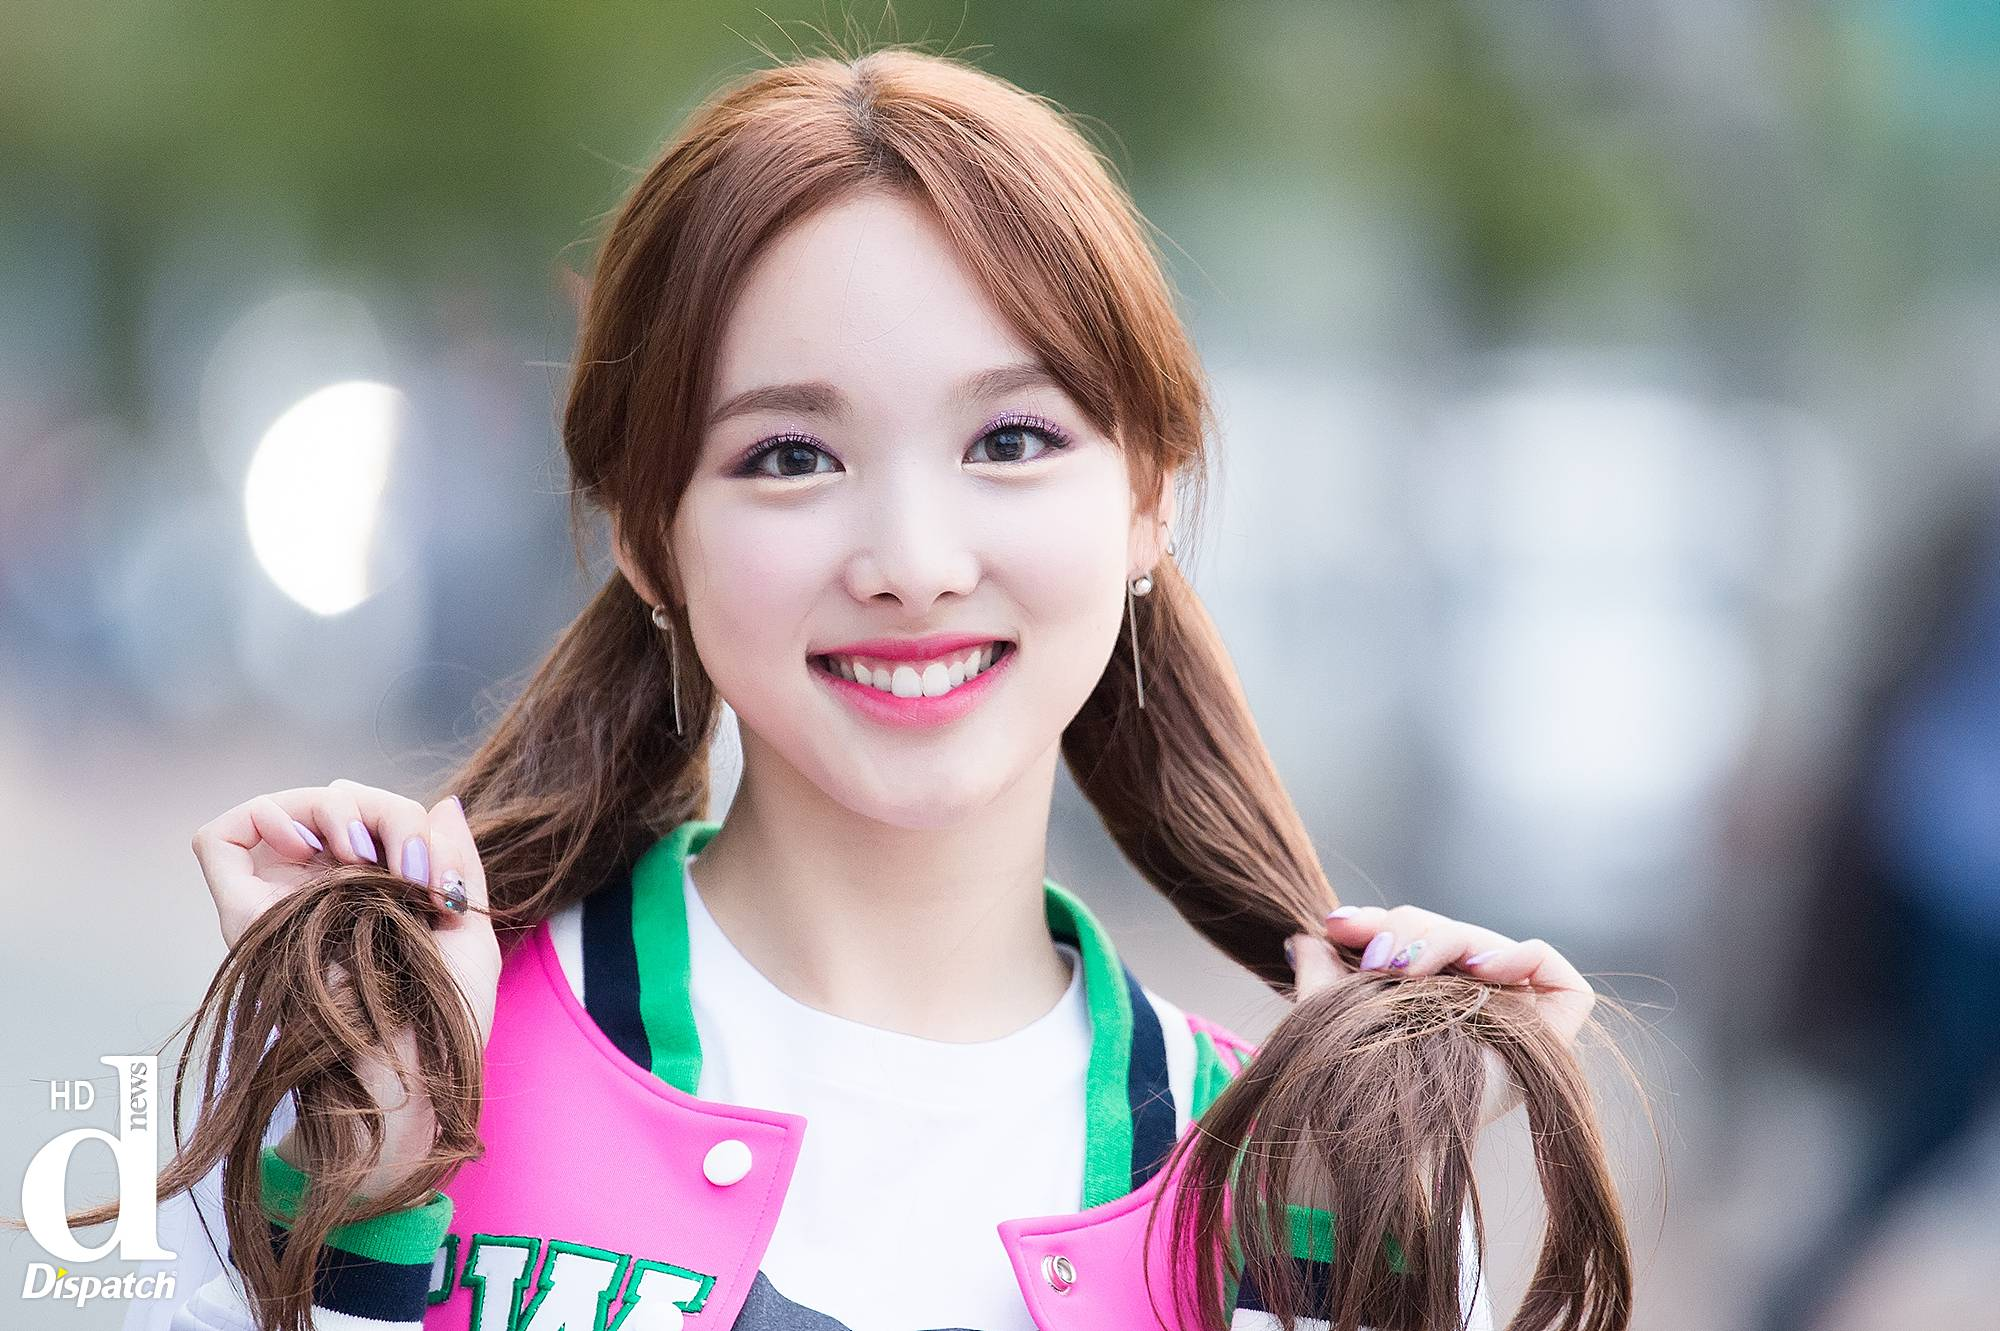 Nayeon's Signature Adorable Smile Has Caused Fans To Give Her An Adorable Nickname